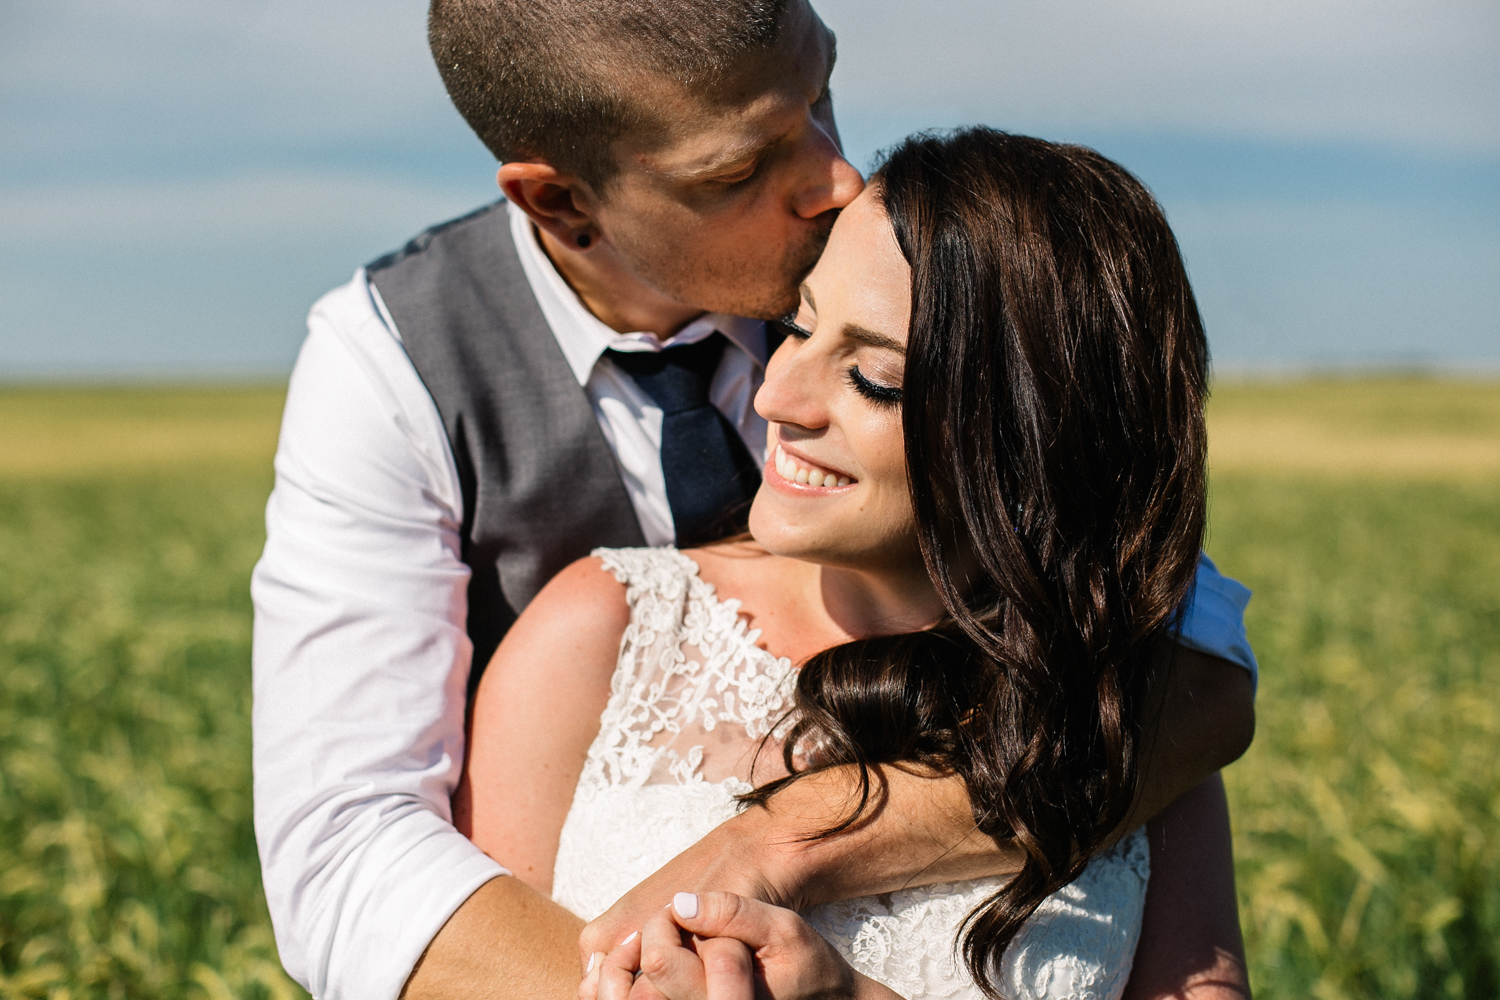 lethbridge-wedding-photography-love-and-be-loved-photographers-ashlin-anne-backyard-wedding-image-picture-photo-318.jpg